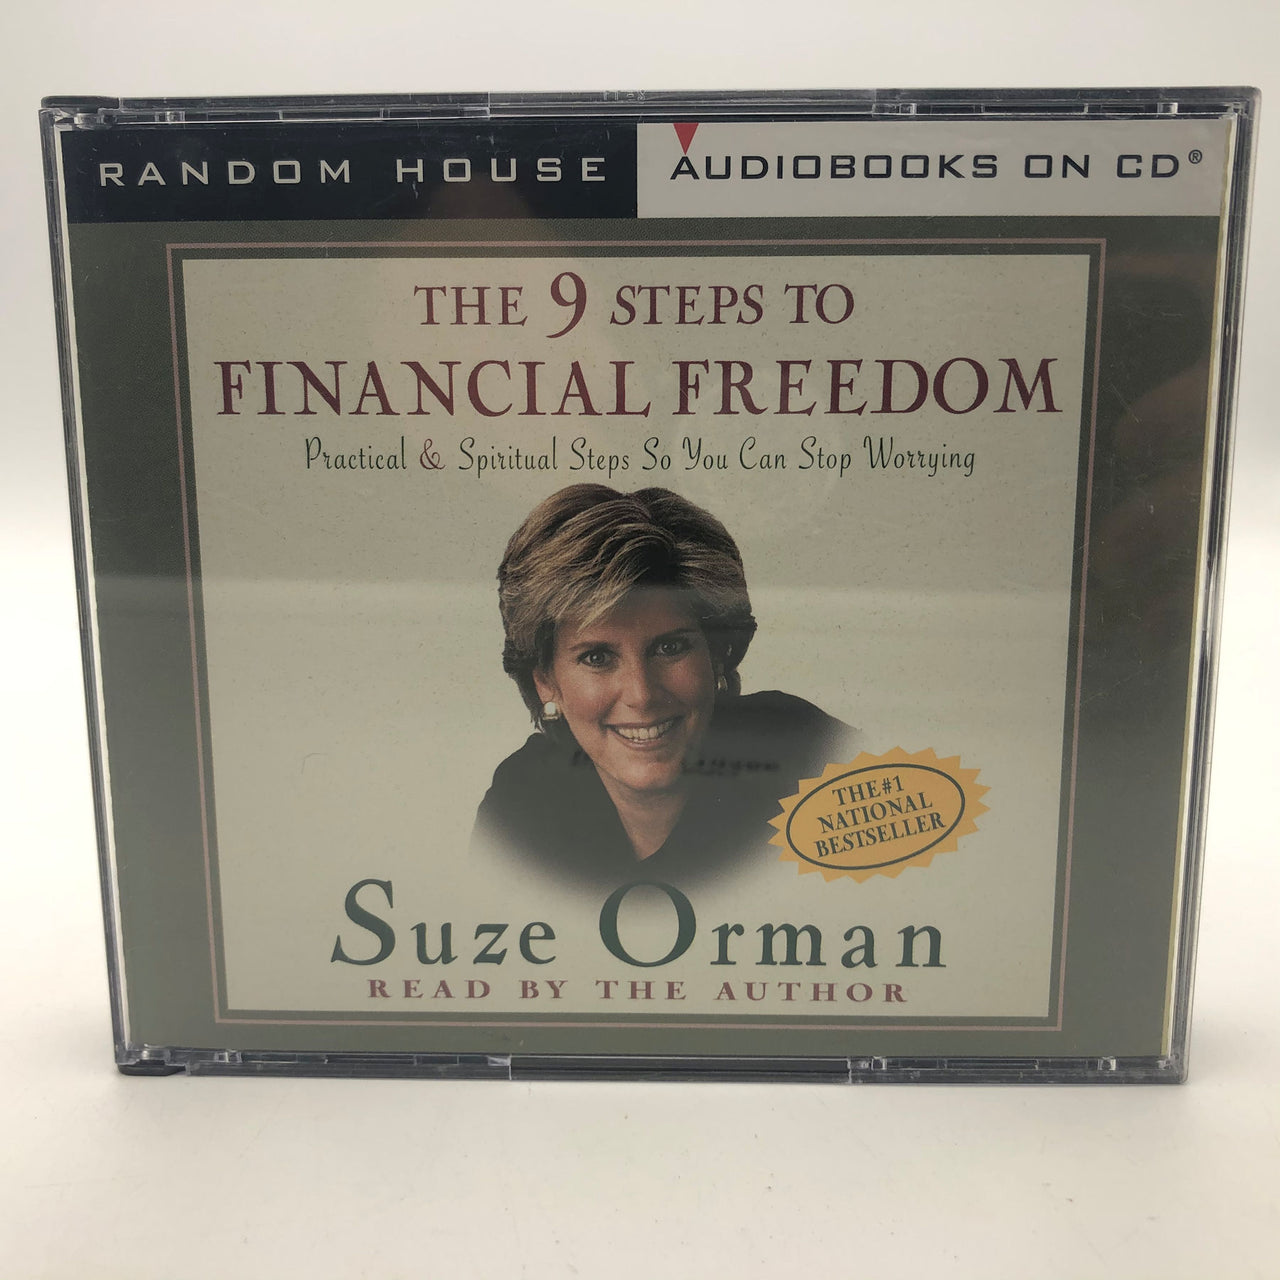 Suze Orman The 9 Steps to Financial Freedom 3 CD Audiobook